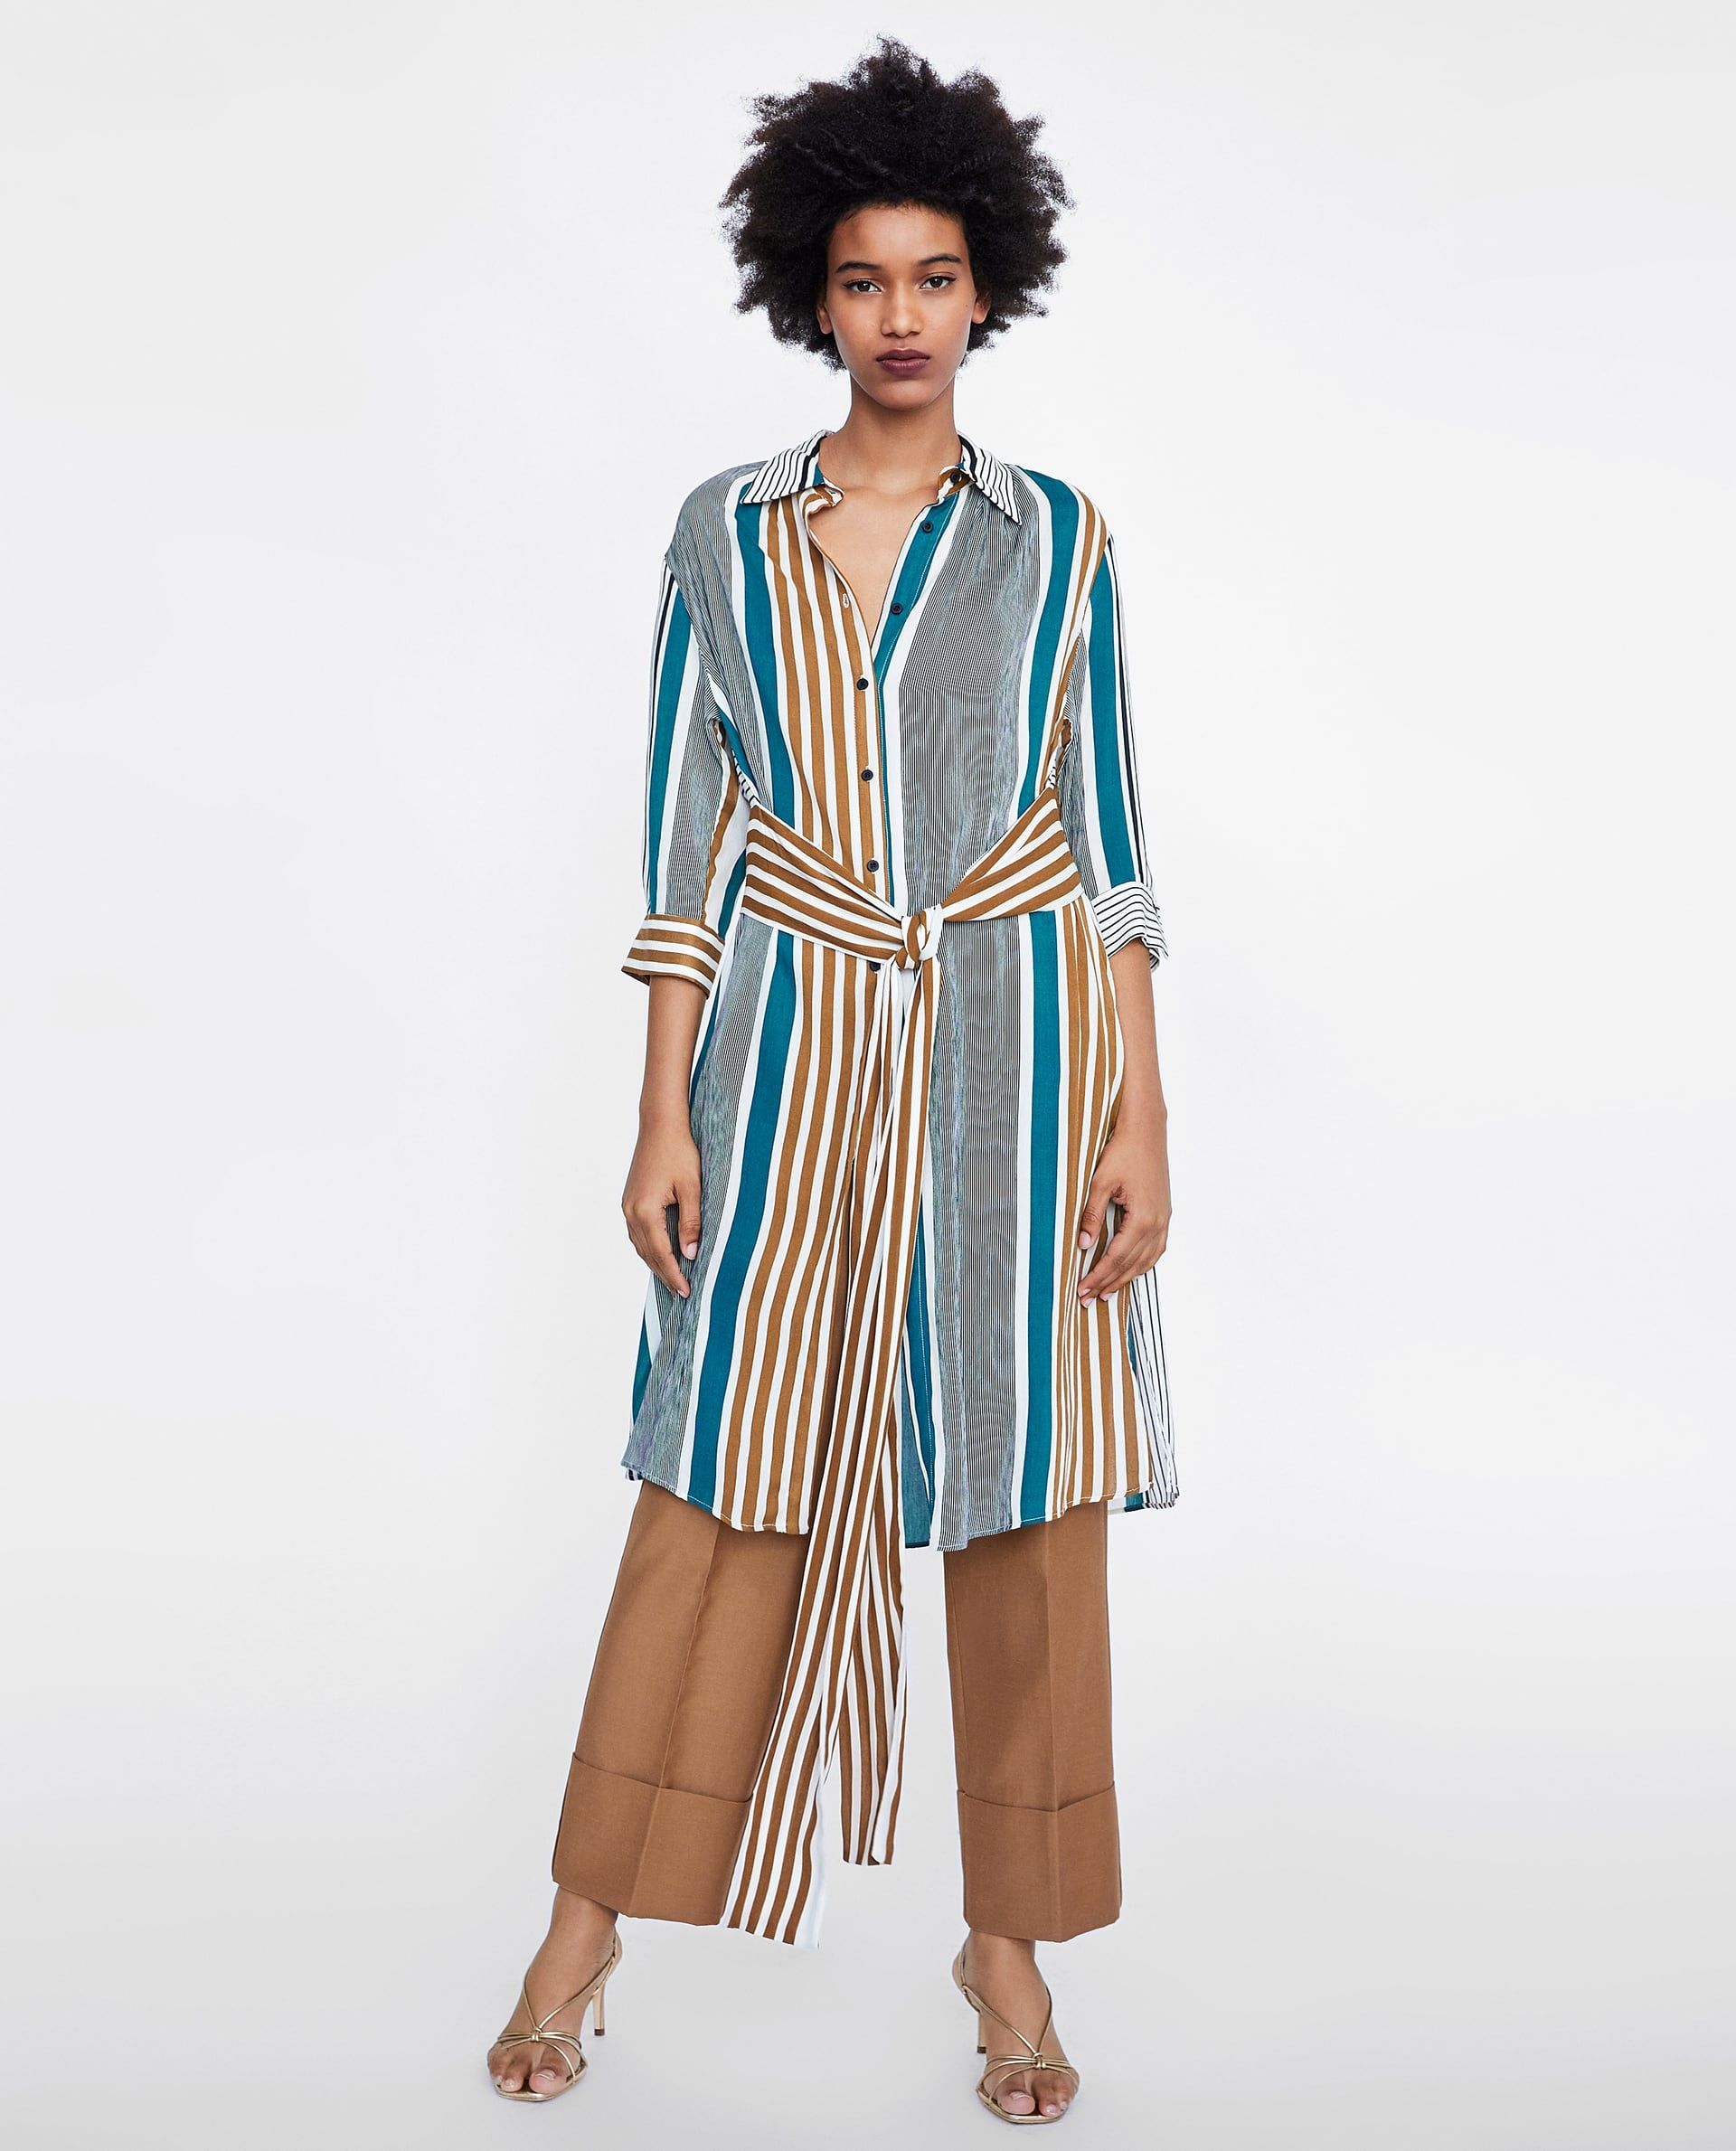 9a5b3c6894048 ZARA - WOMAN - STRIPED SHIRT DRESS Spring Summer 2018